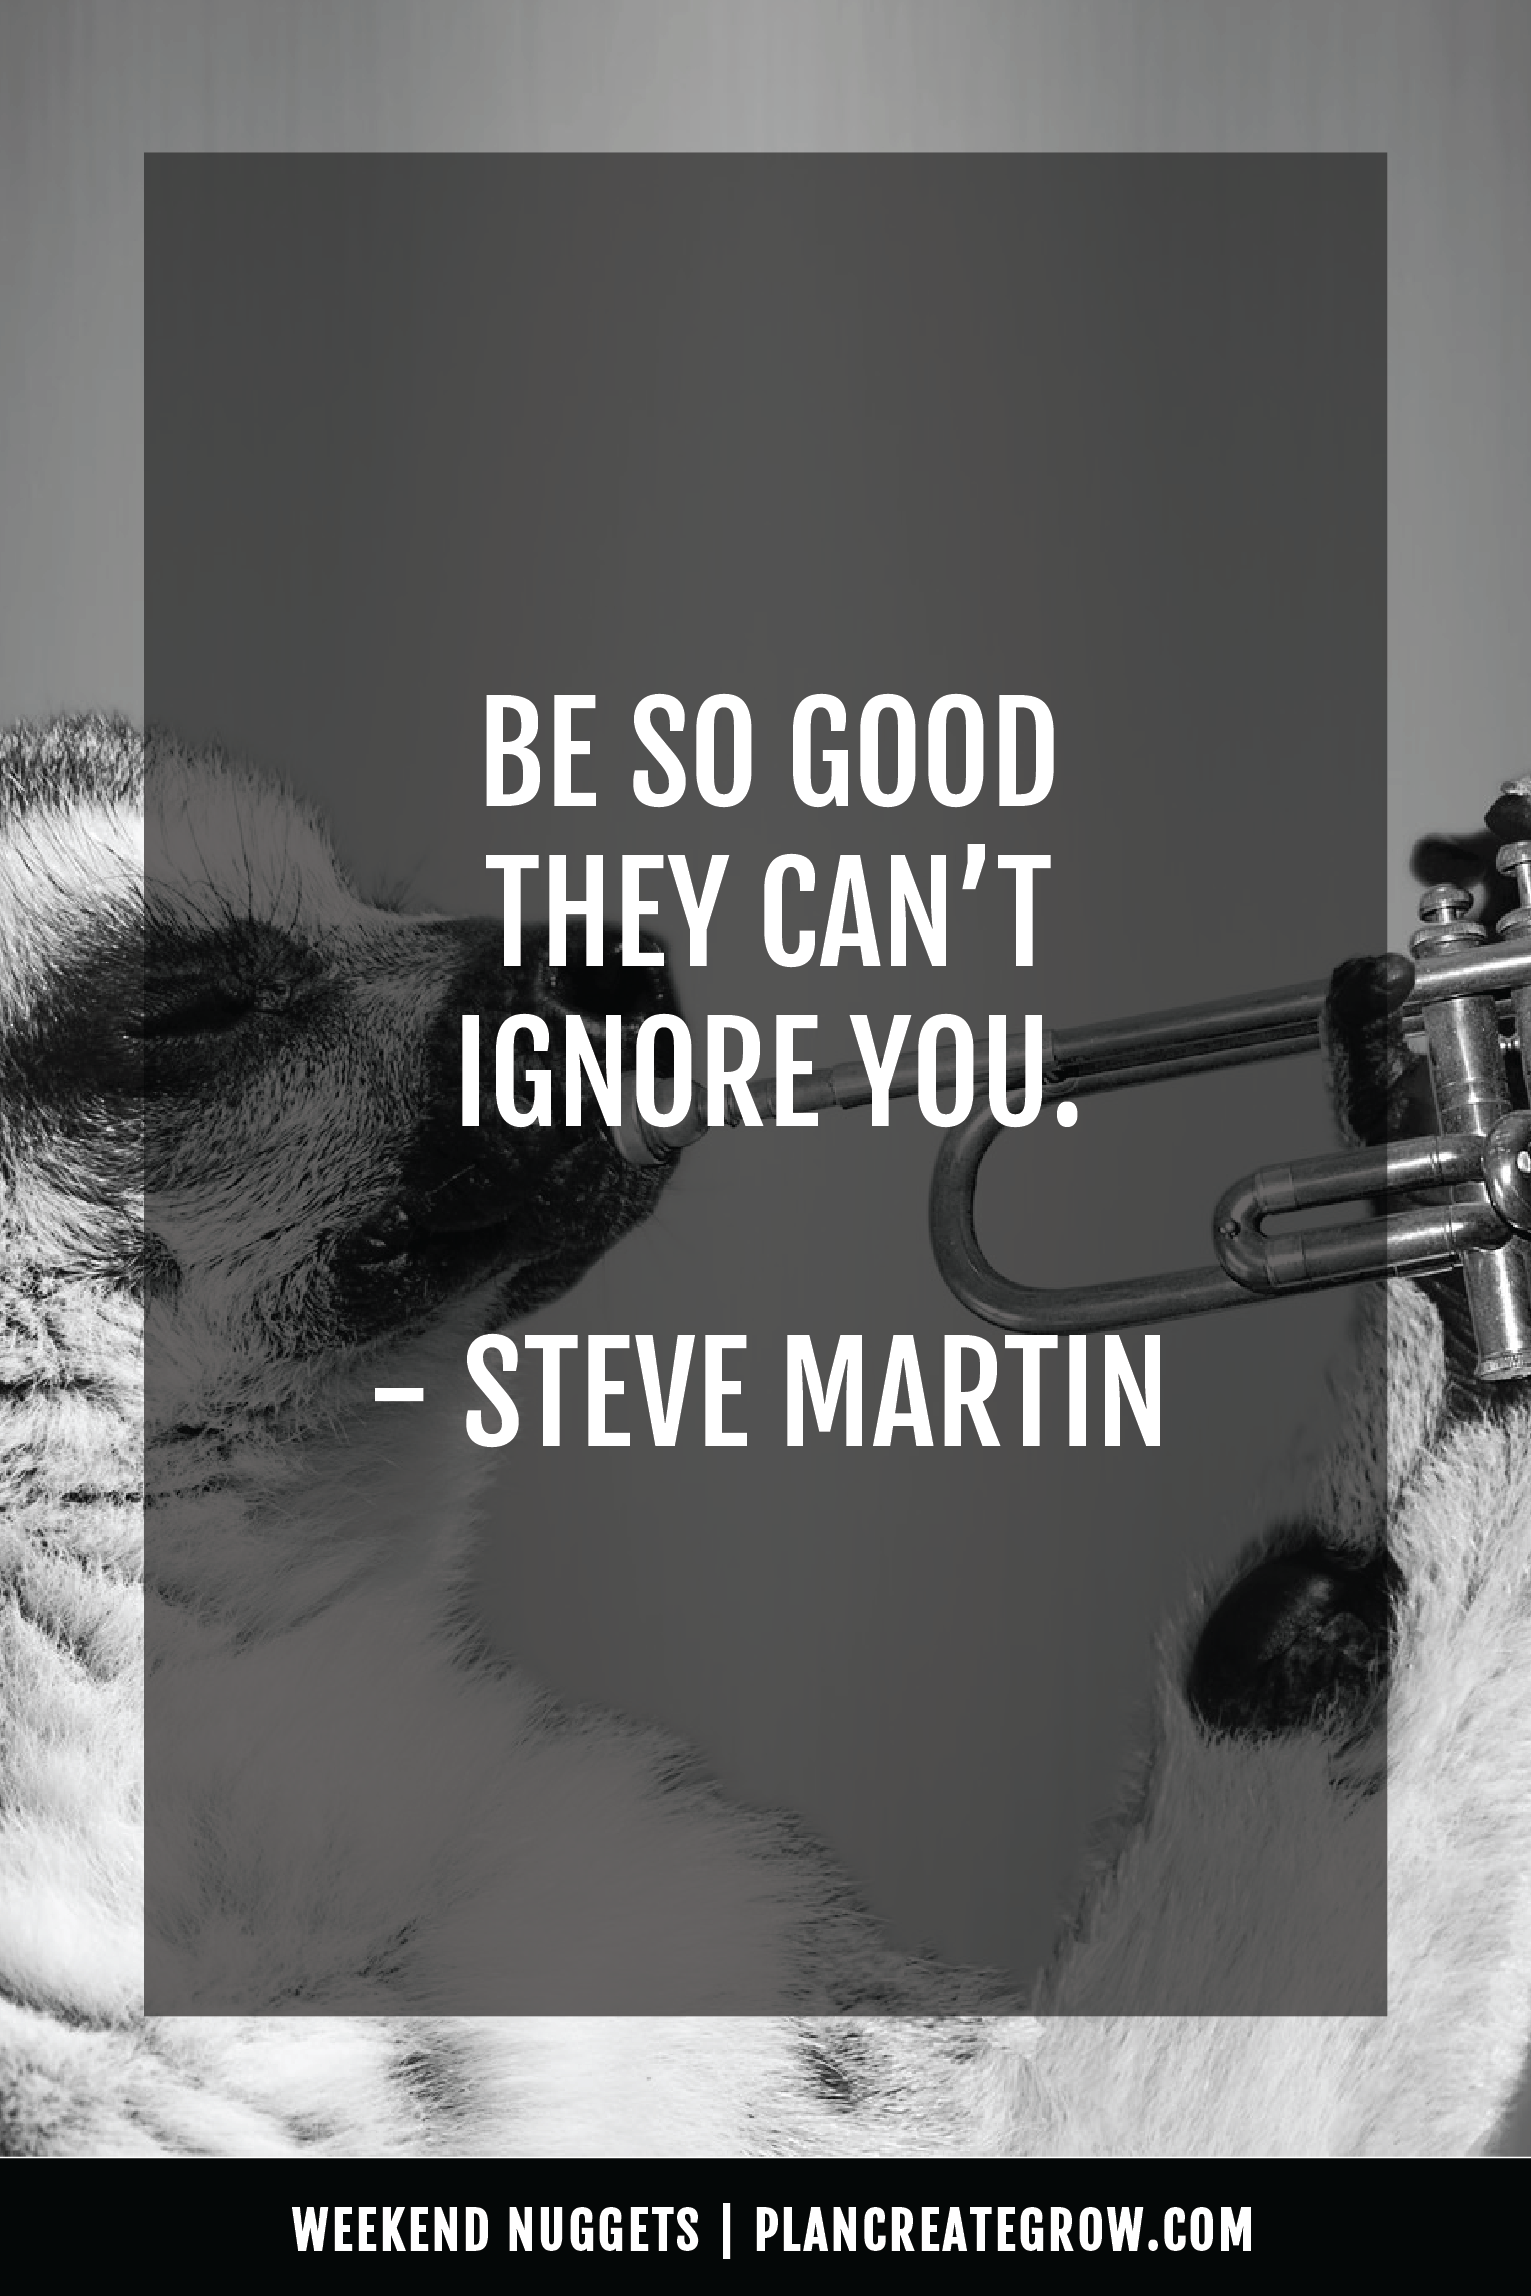 """""""Be so good they can't ignore you."""" - Steve Martin  This image forms part of a series called Weekend Nuggets - a collection of quotes and ideas curated to delight and inspire - shared each weekend. For more, visit plancreategrow.com/weekend-nuggets."""